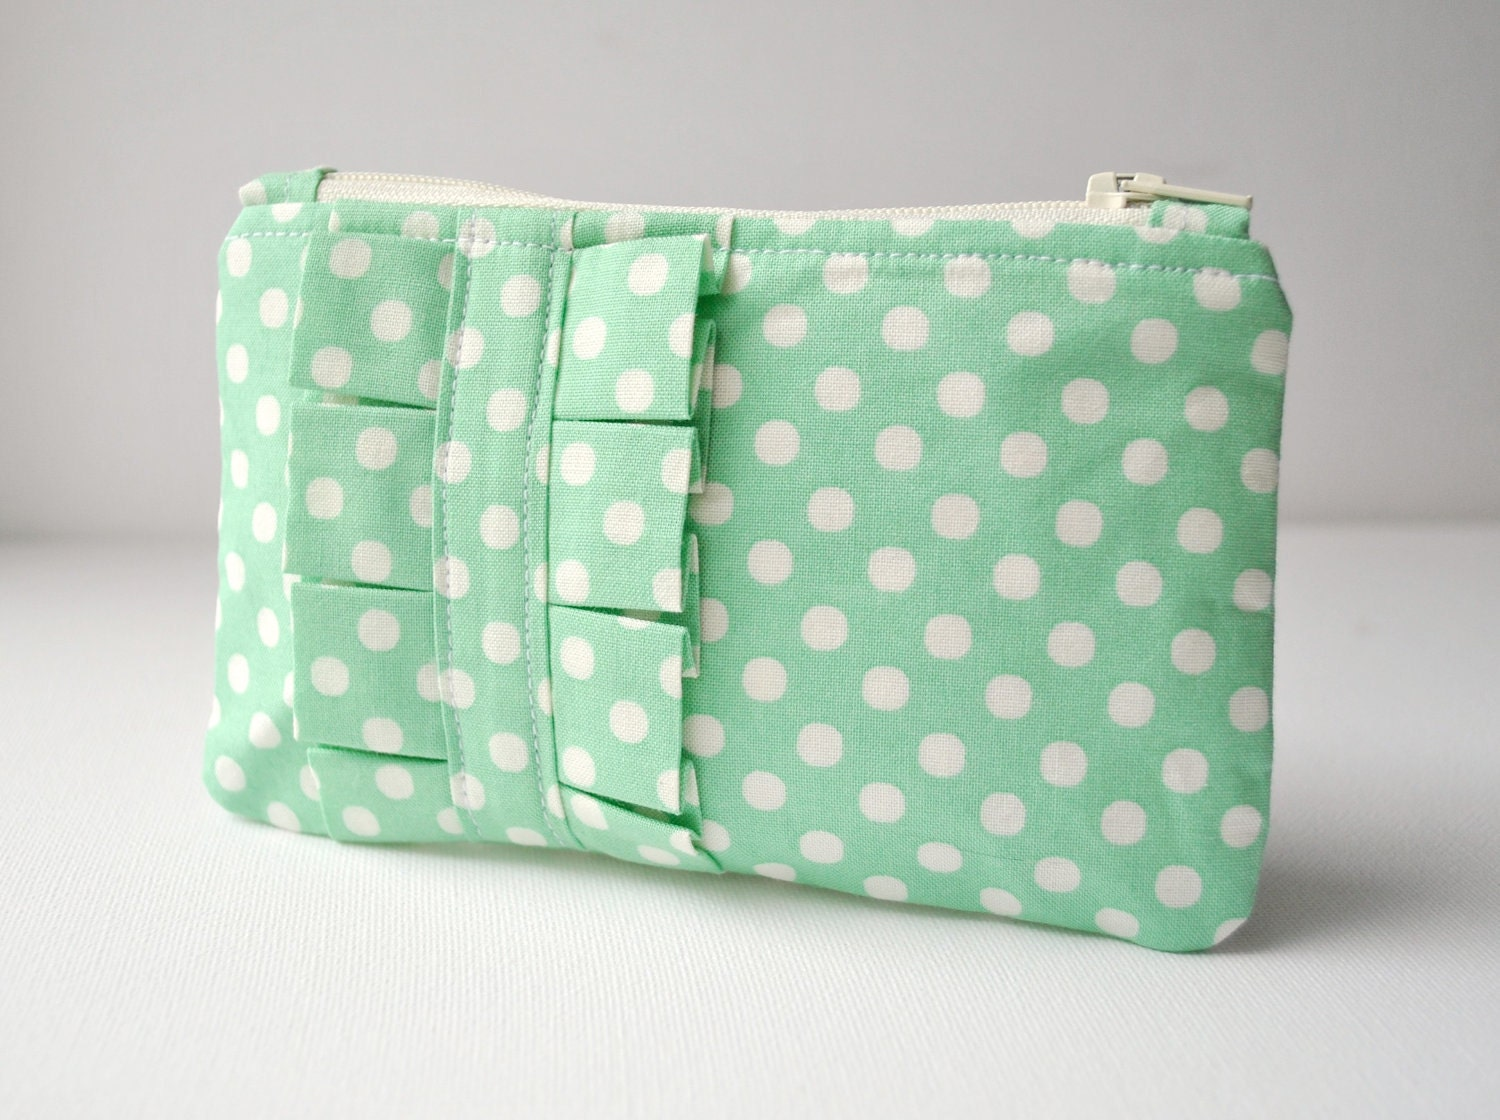 Coin purse wallet: Polka dot spot in mint green and white with ruffle.